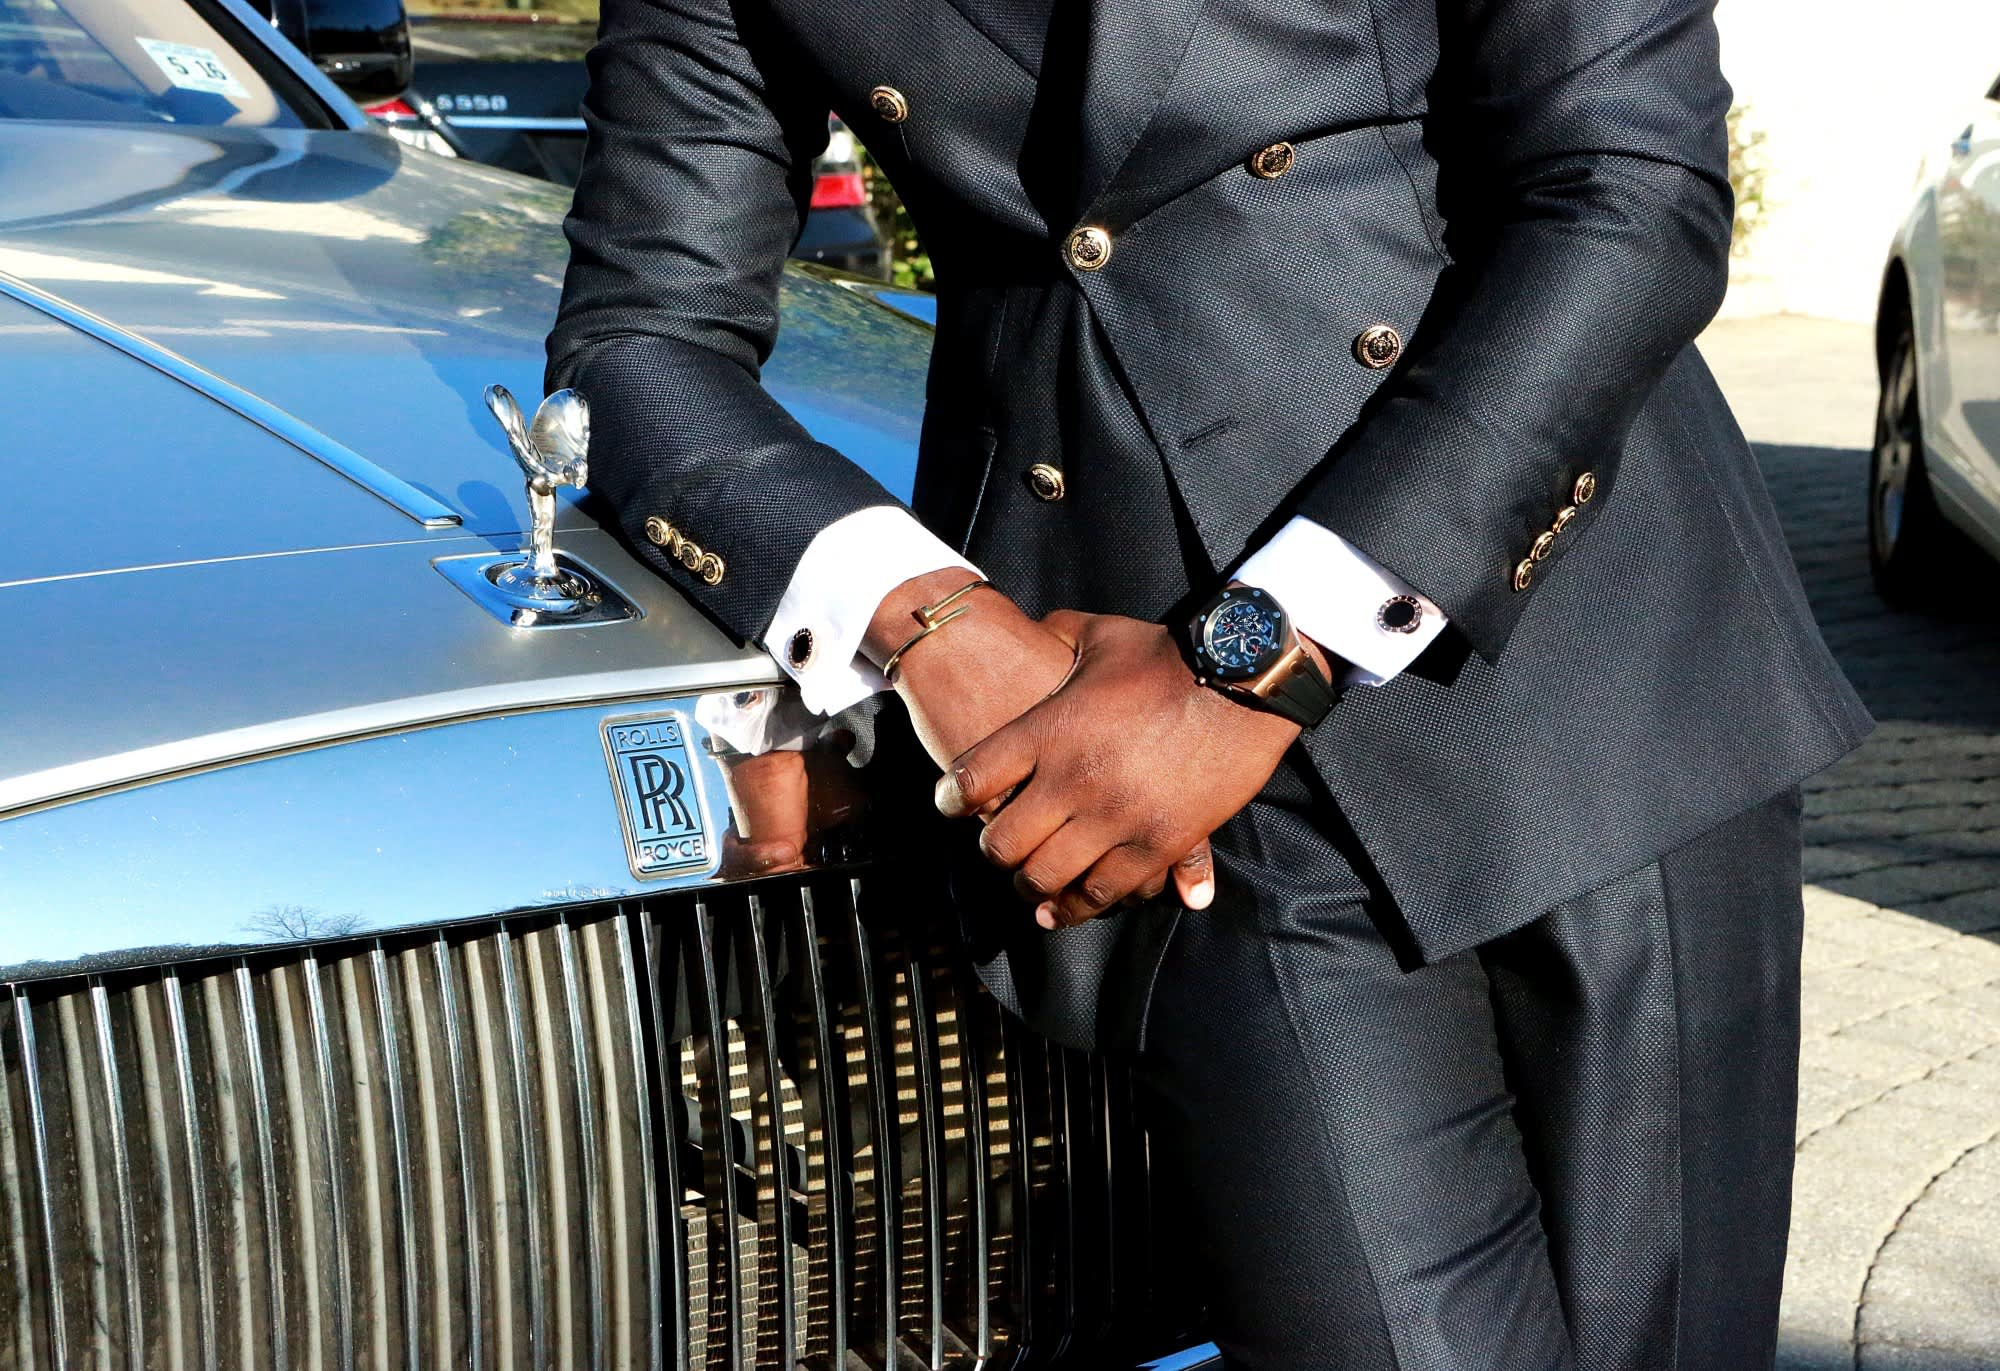 Study: Buying luxury items makes you feel less confident and authentic